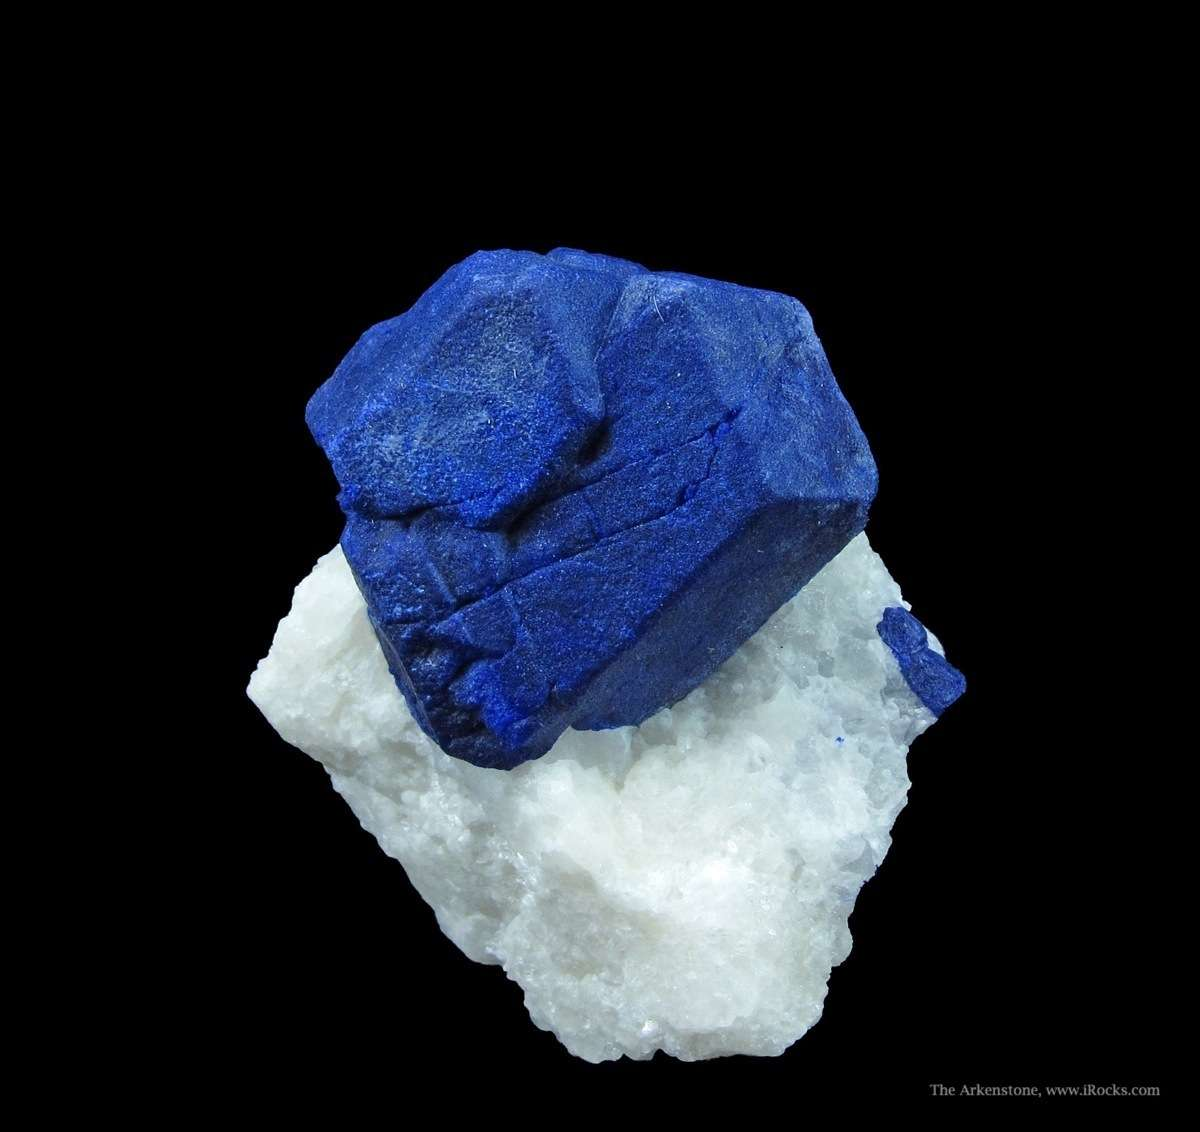 A sharp rate Lazurite crystal color normally rock forming material